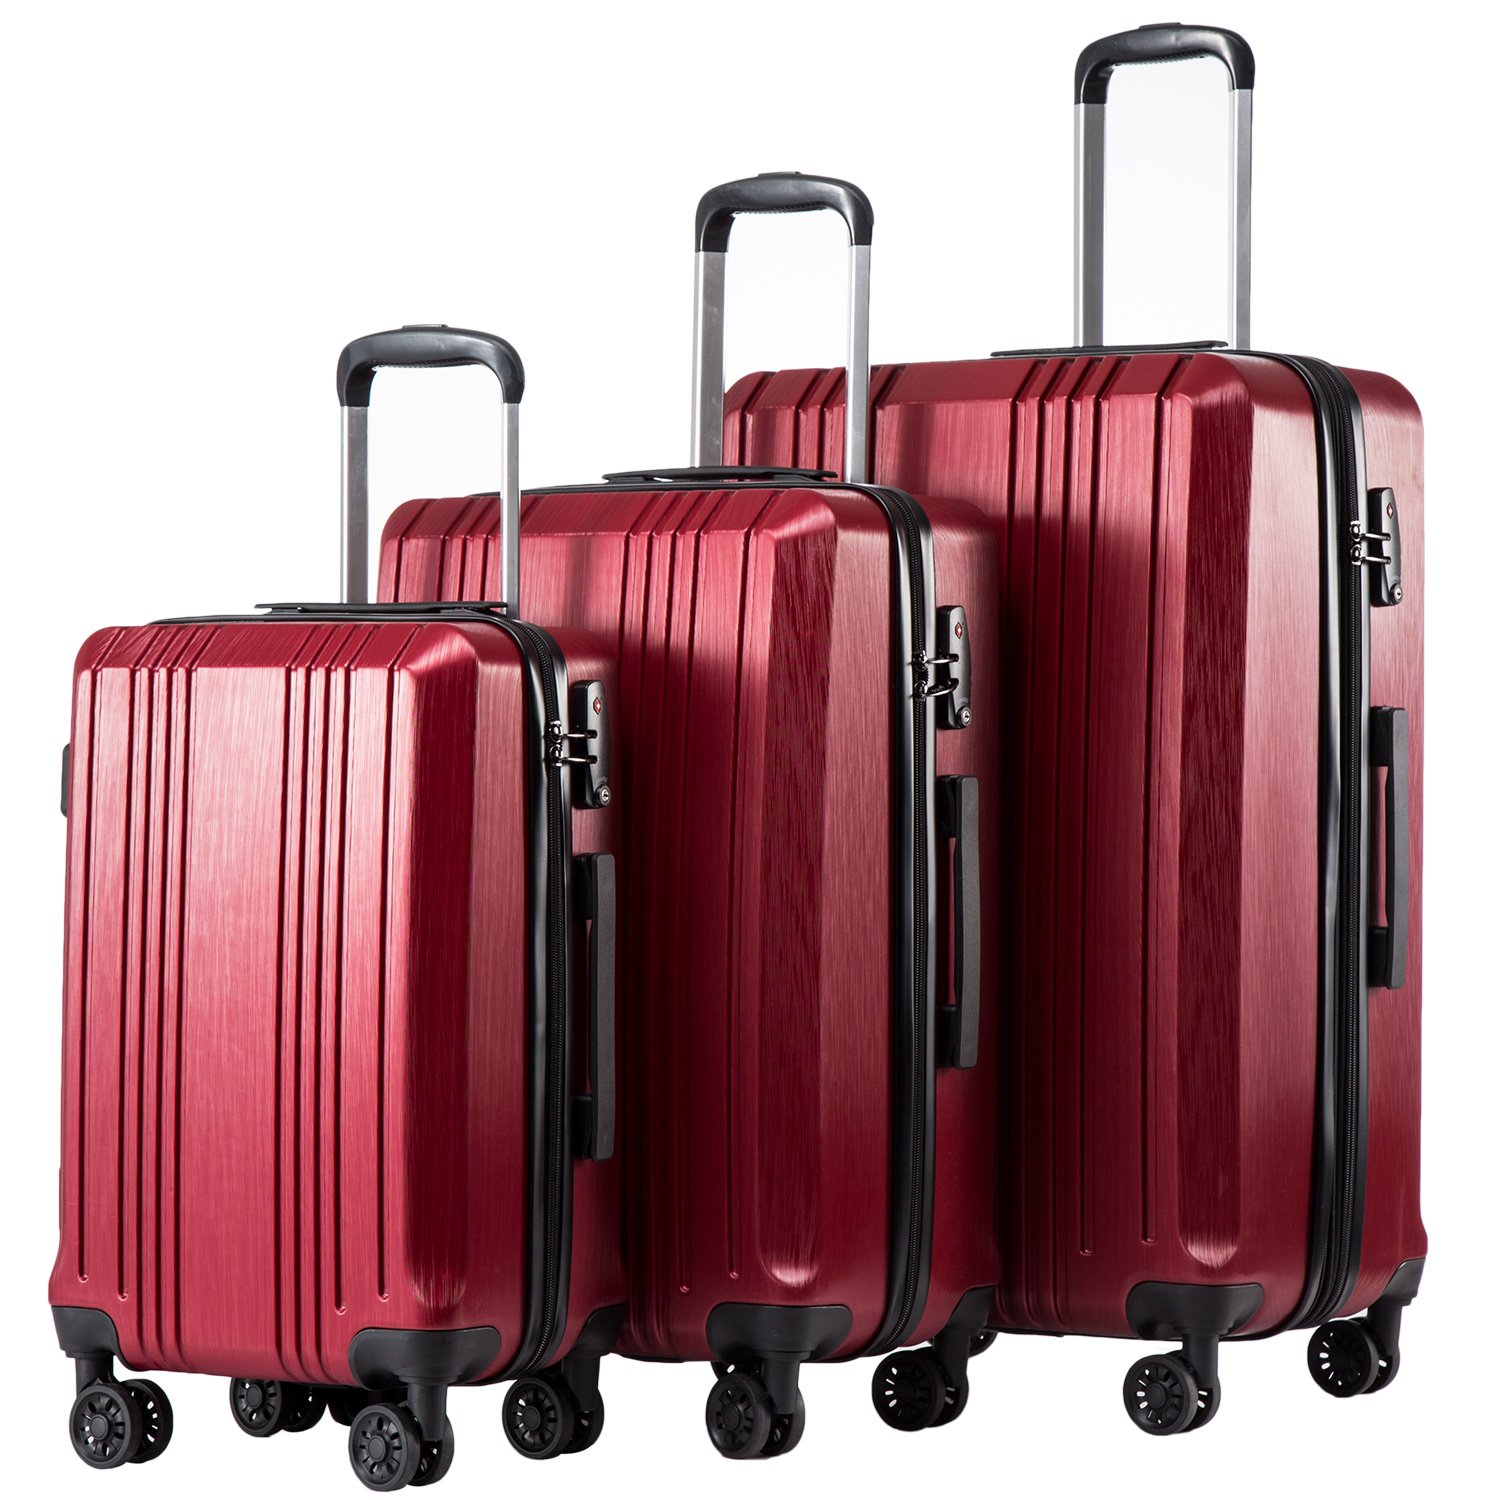 Best Luggage Sets 5